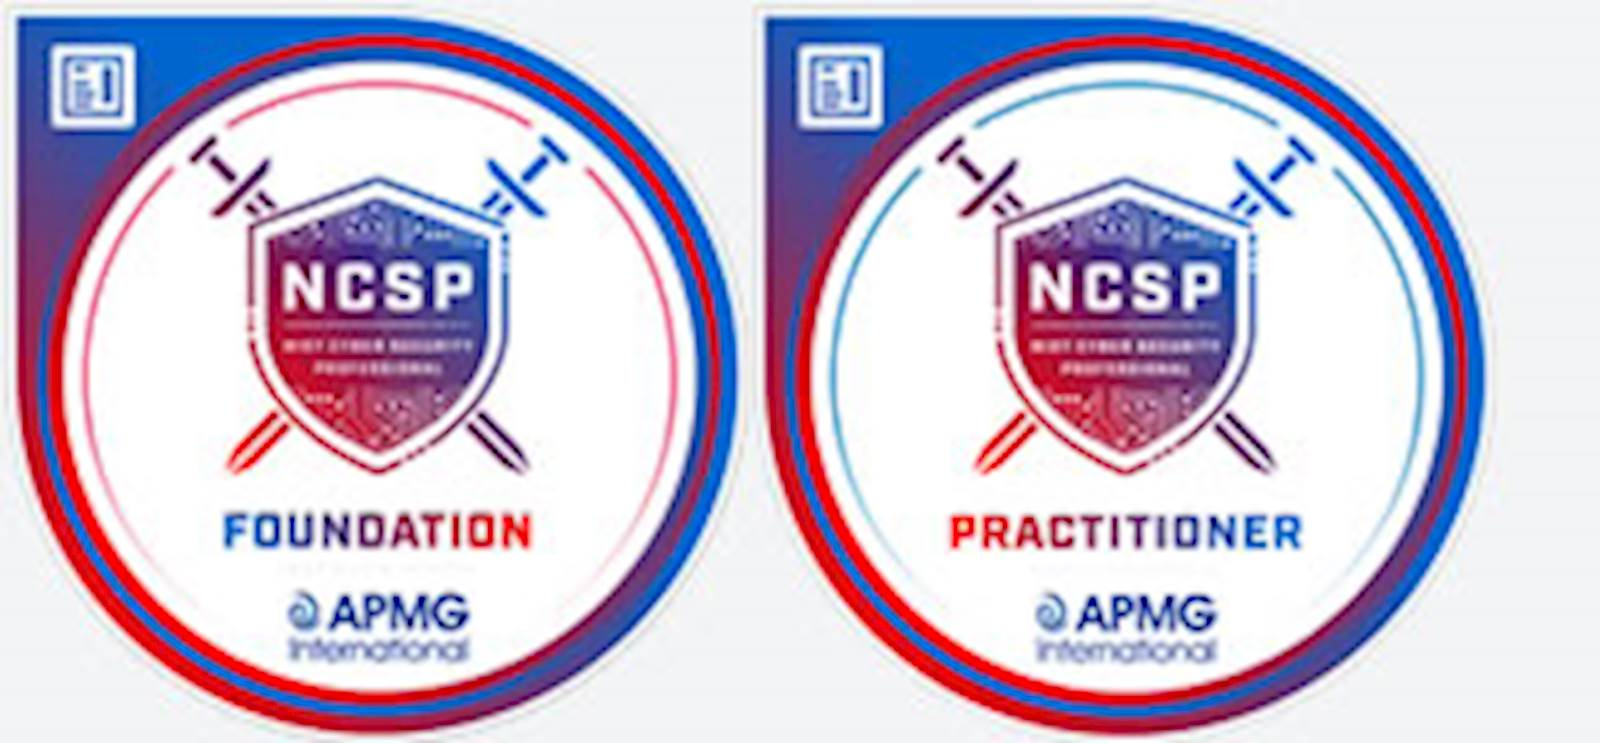 NCSF Foundation and Practioner Certification logos